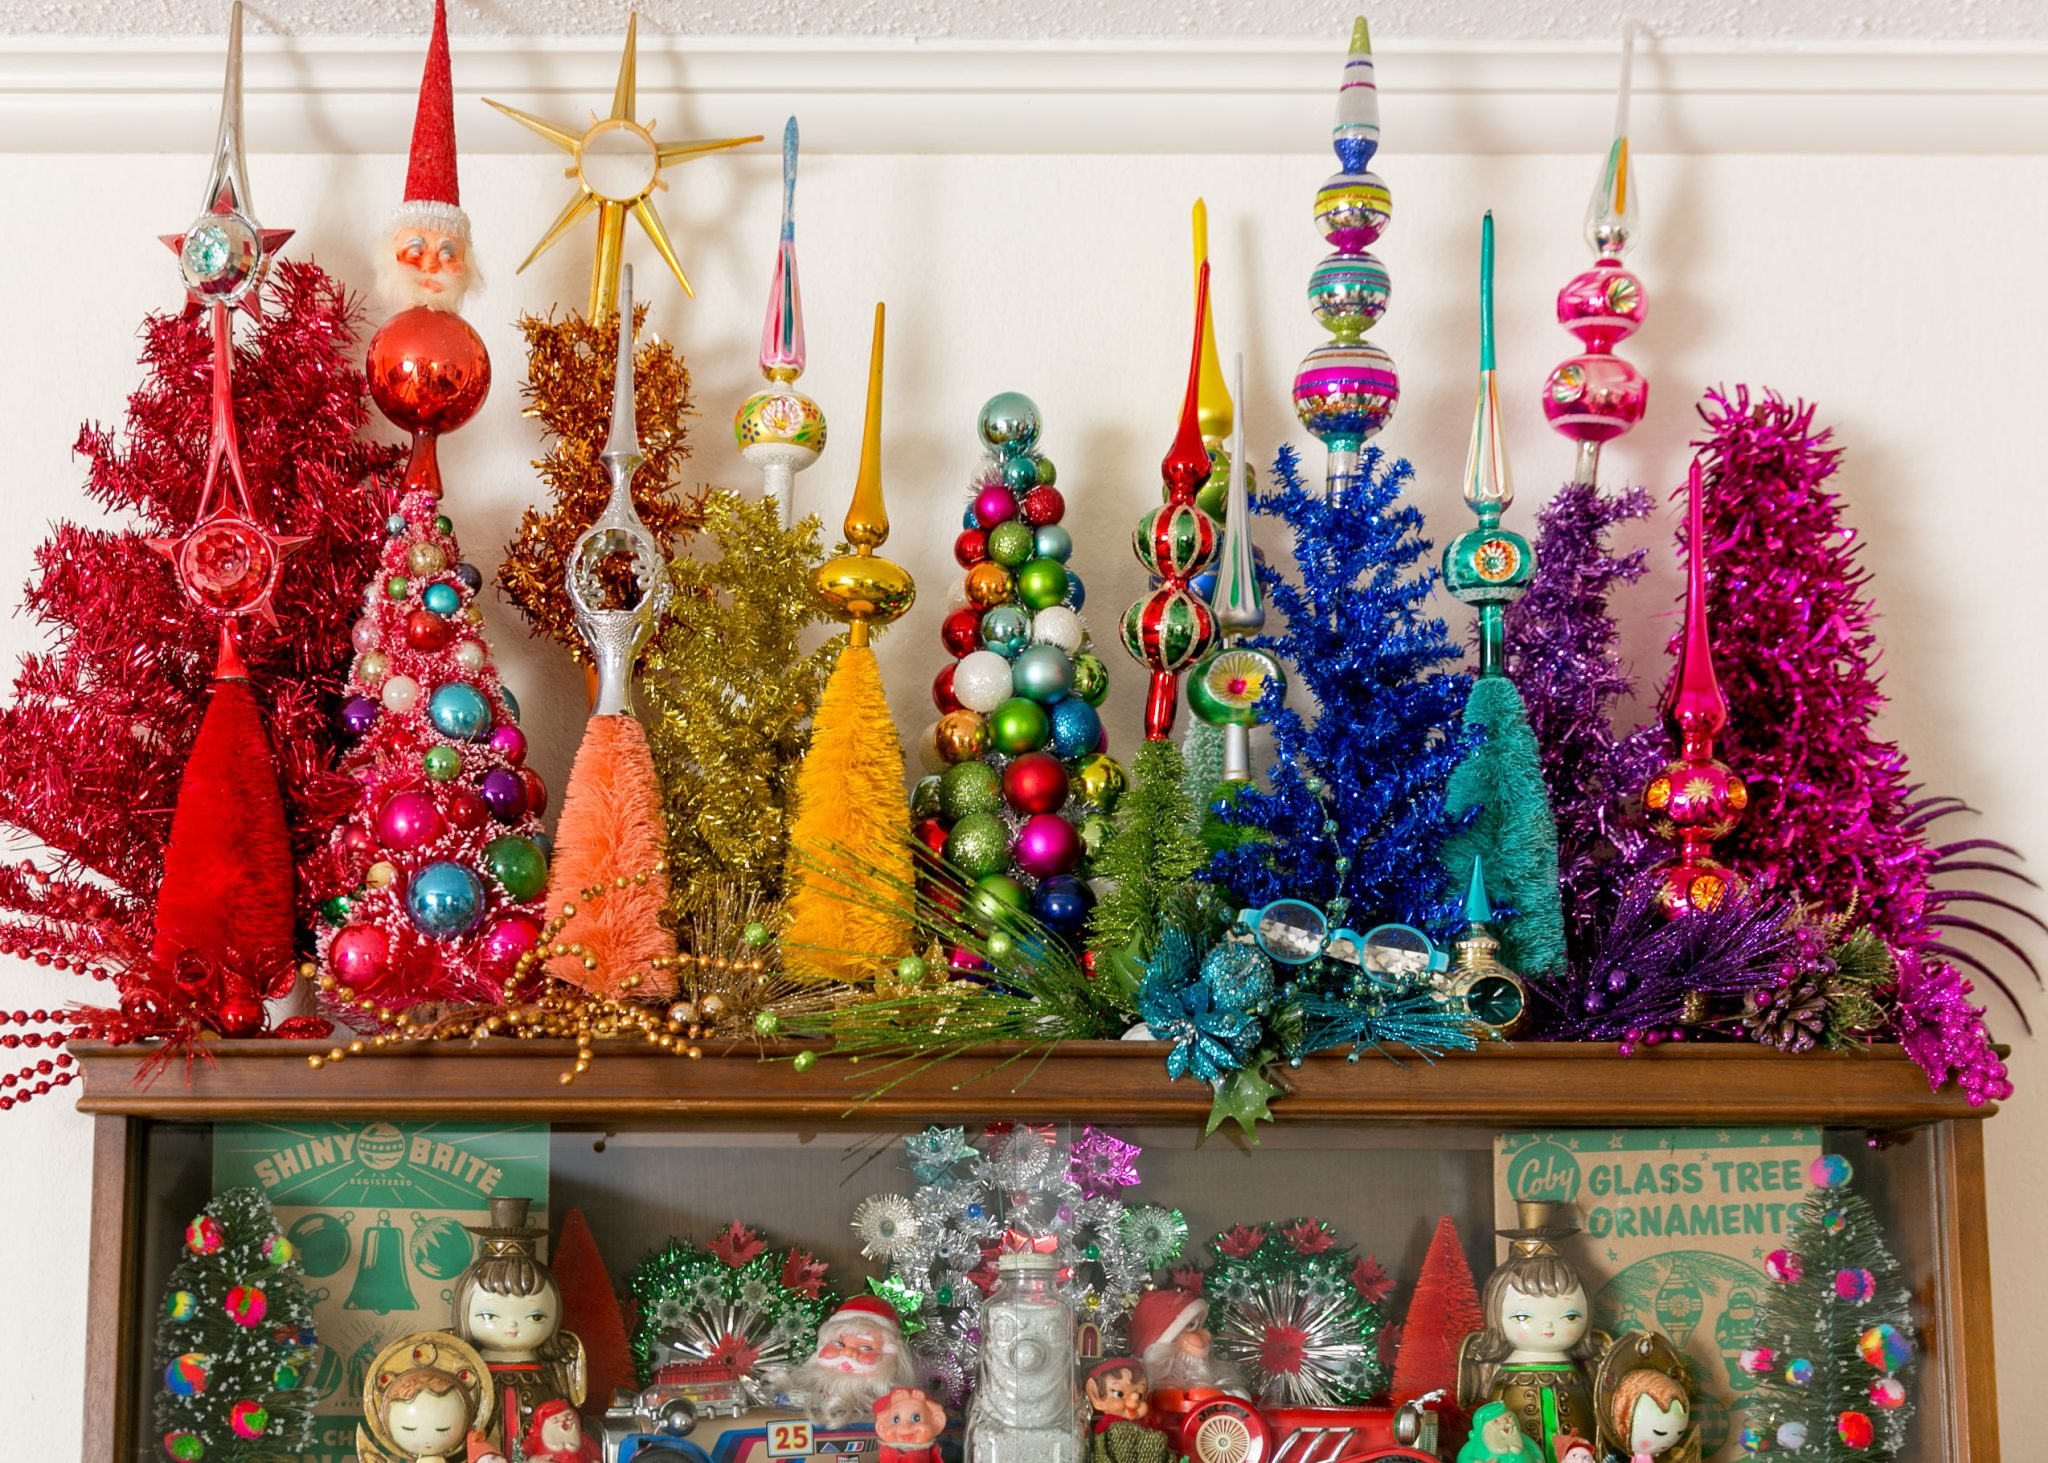 Love this colorful collection of vintage Christmas tree toppers #vintagechristmas #christmascollections #treetoppers #shinybrite #retrochristmas #colorfulchristmas